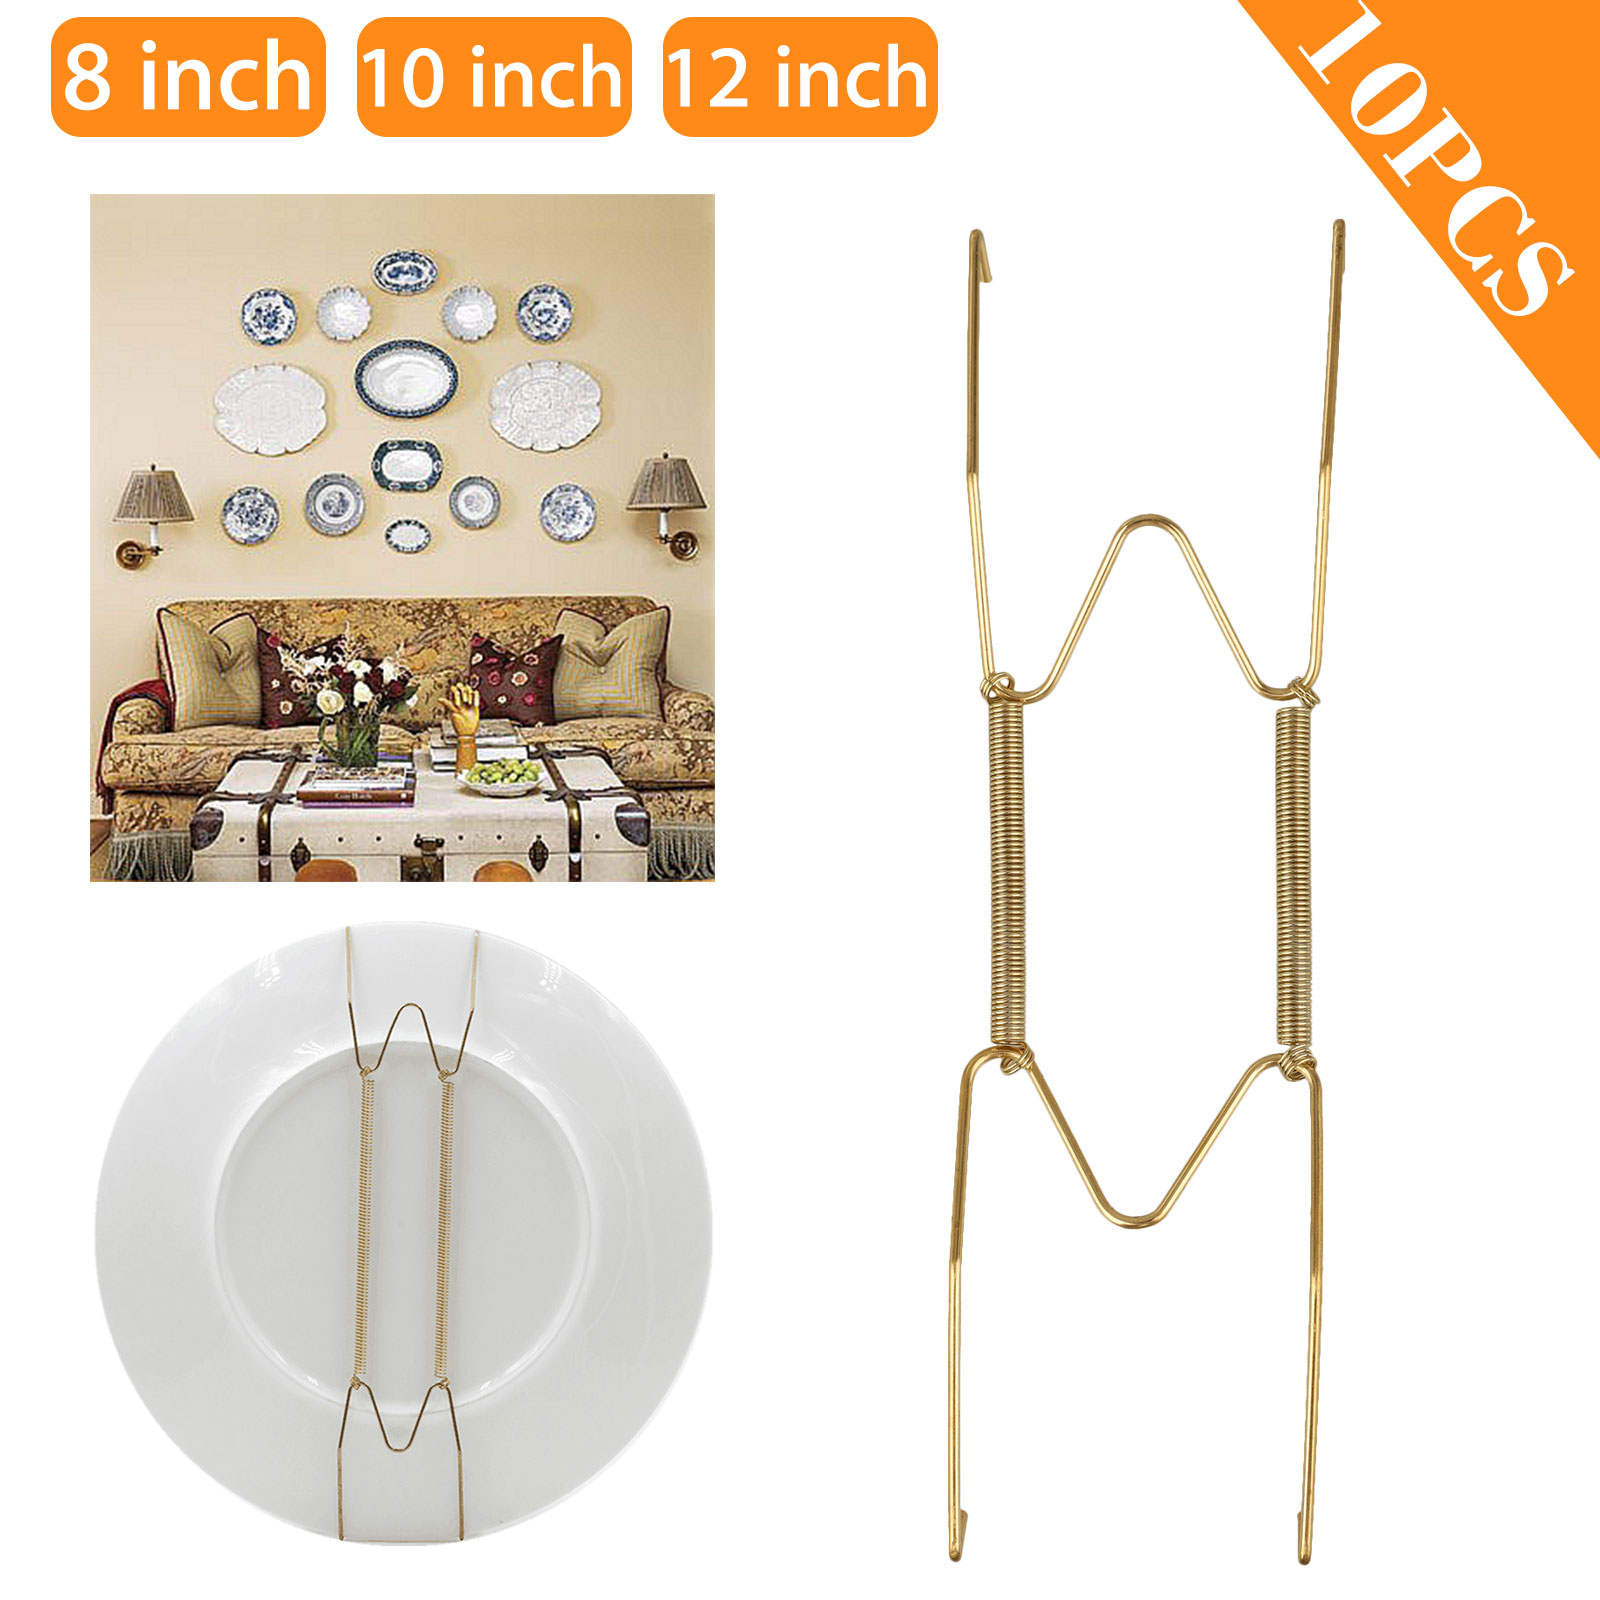 10 Pack 12 10 8inch Plate Hangers For The Wall Plate Decorative Dish Display Tray Holder For Home Decoration Walmart Com Walmart Com